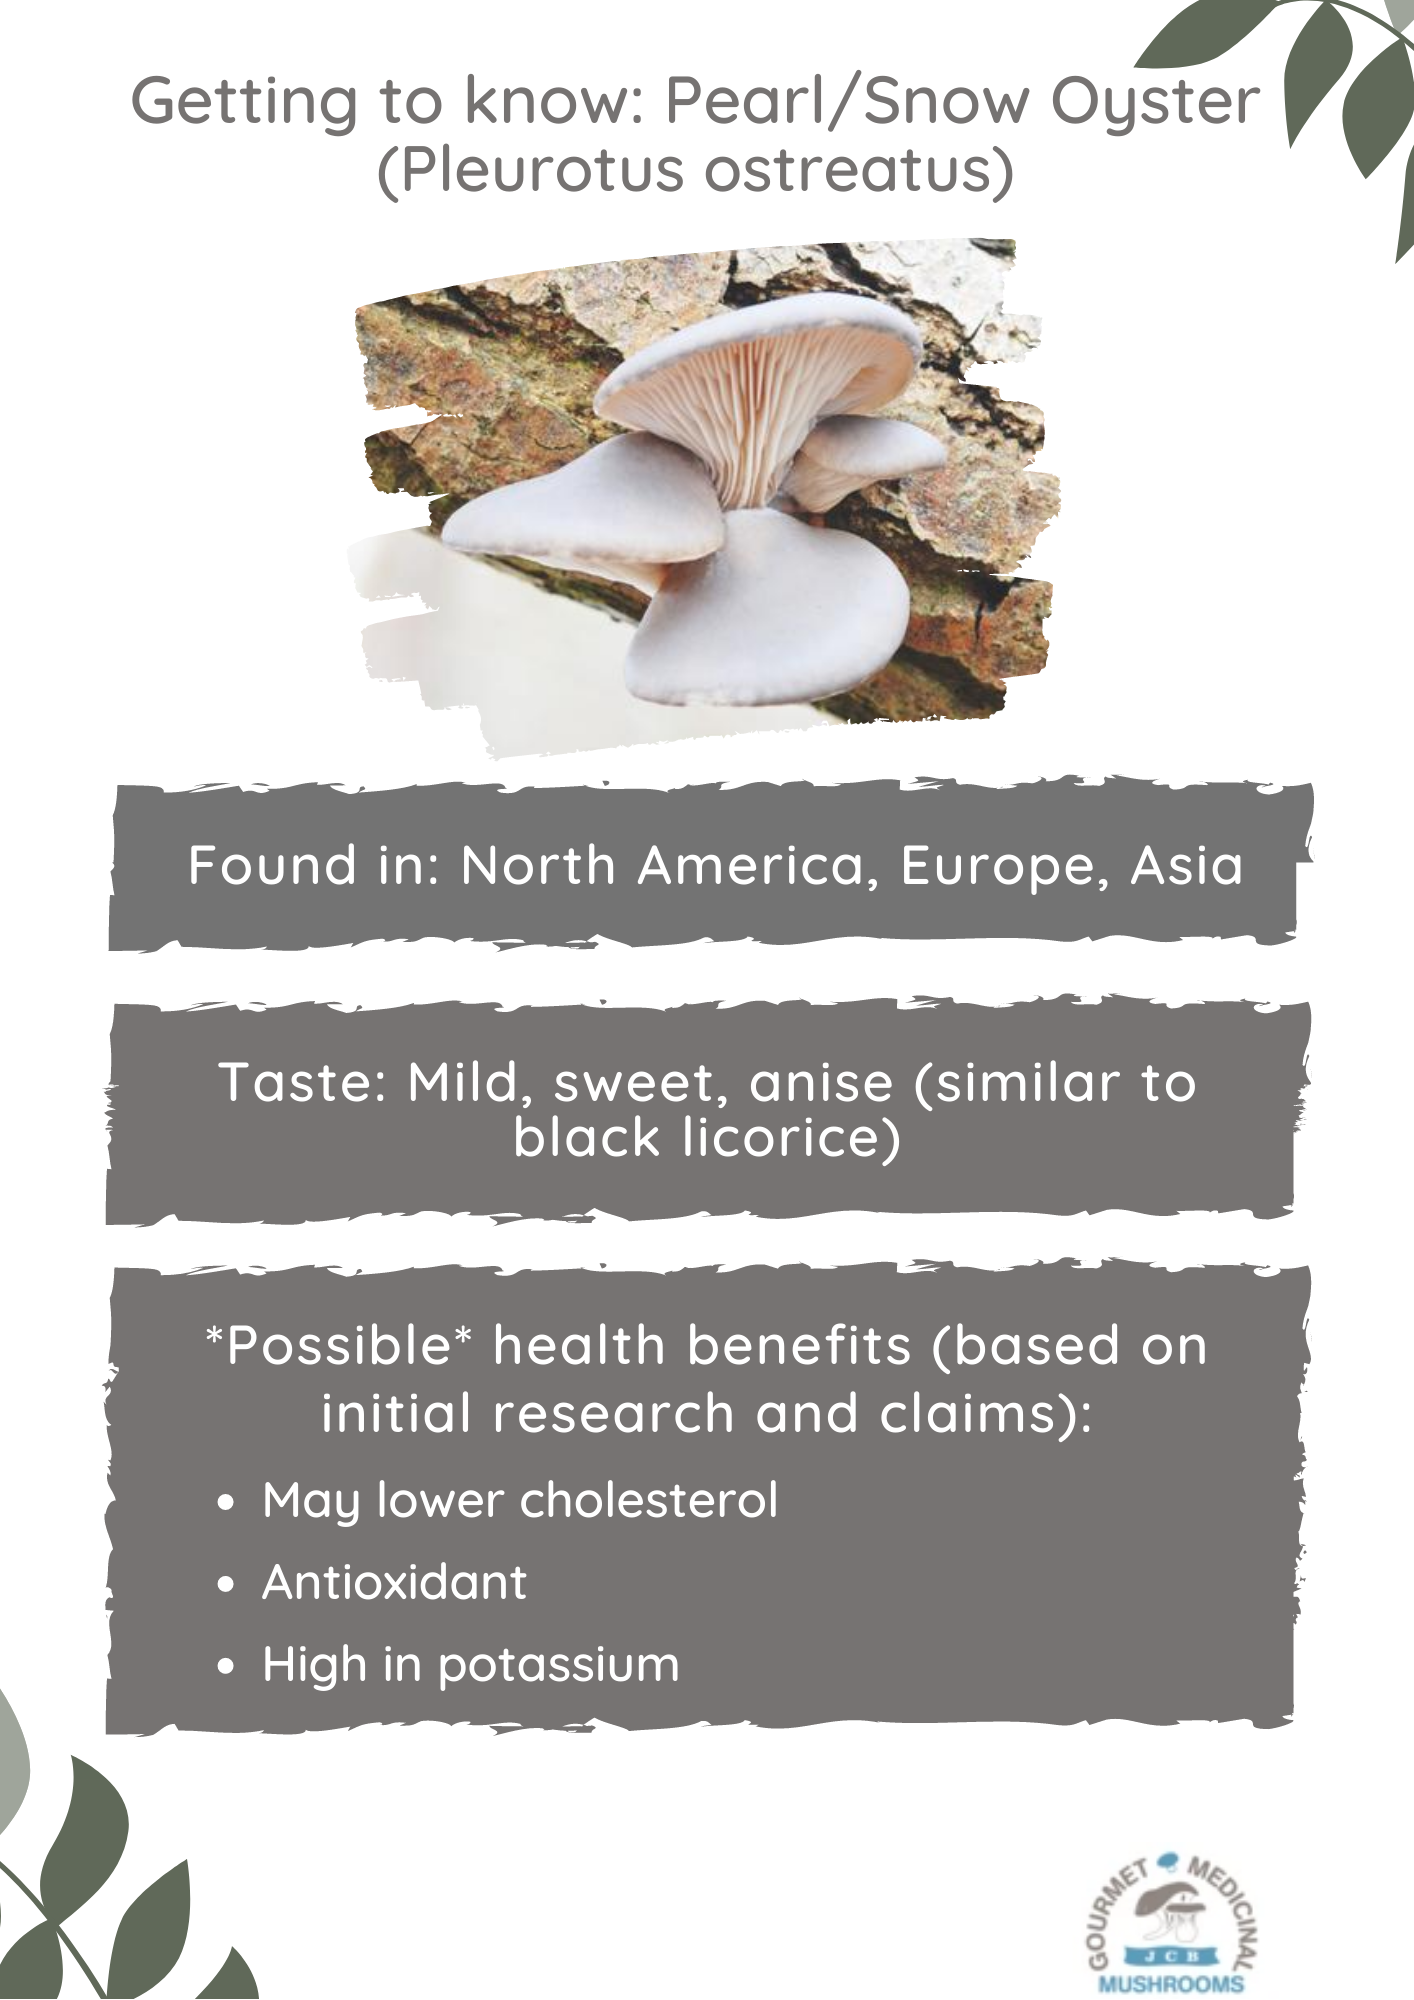 Getting to know - Pearl Oyster Mushrooms